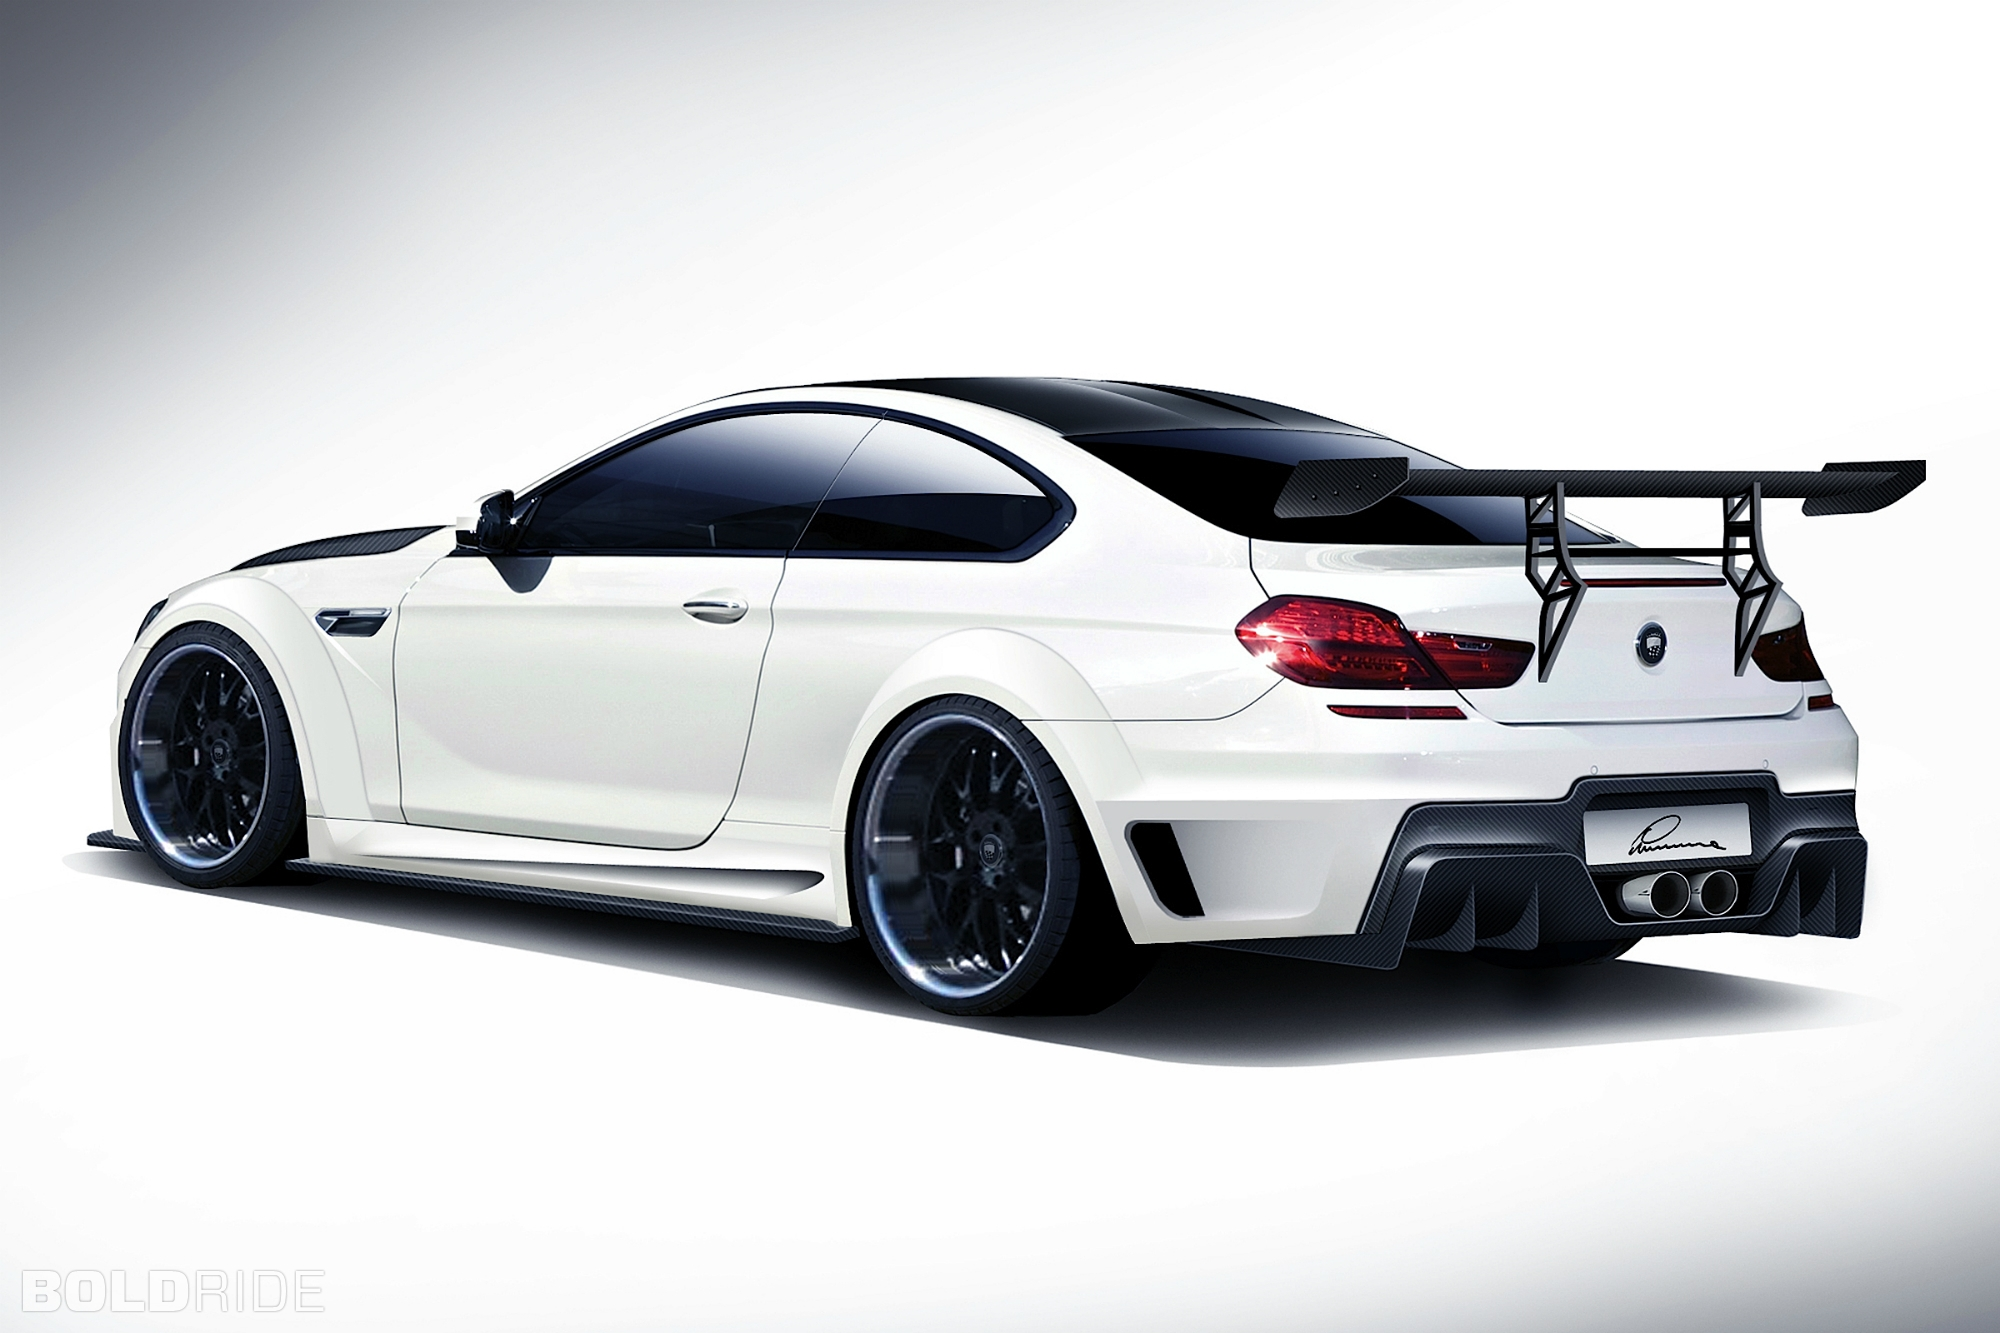 lumma 2012 design bmw m6 tuning e wallpaper 2000x1333. Black Bedroom Furniture Sets. Home Design Ideas